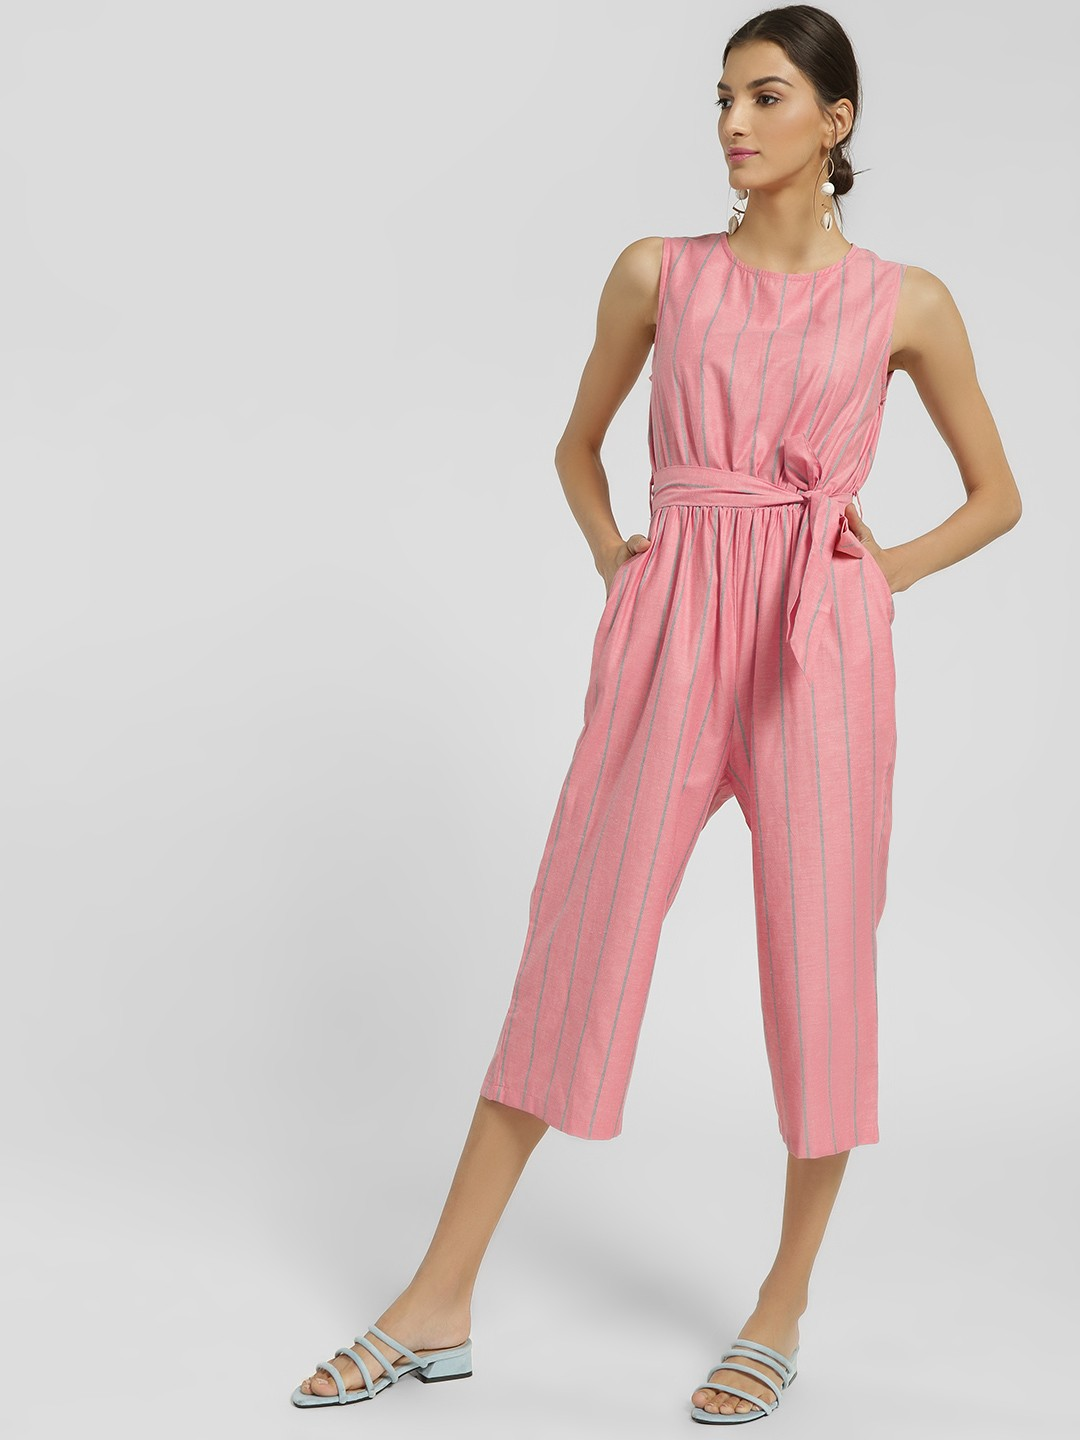 NUSH Pink Stripe Sleeveless Cropped Jumpsuit 1